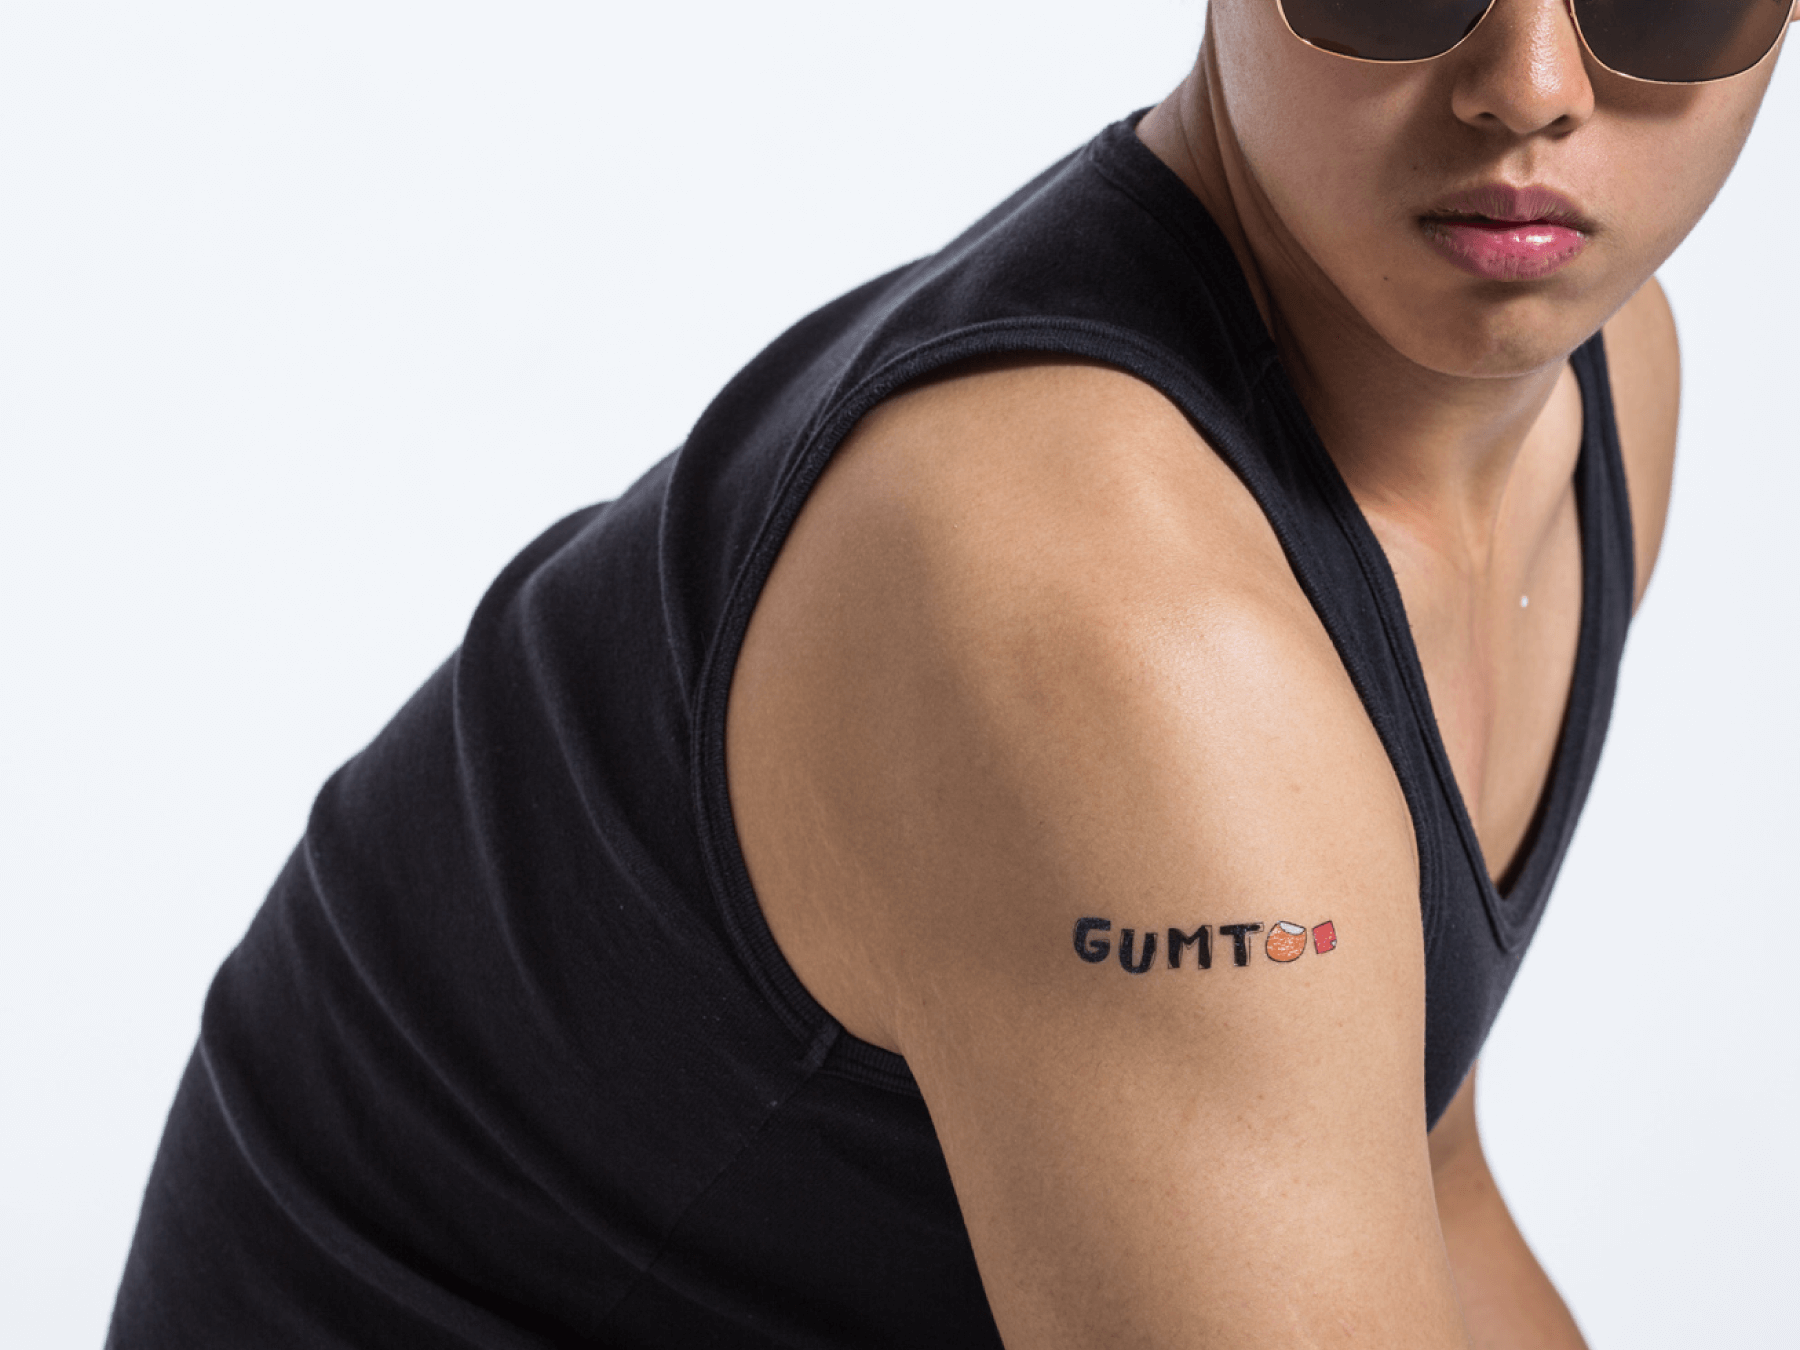 guy wearing gumtoo logo tattoo